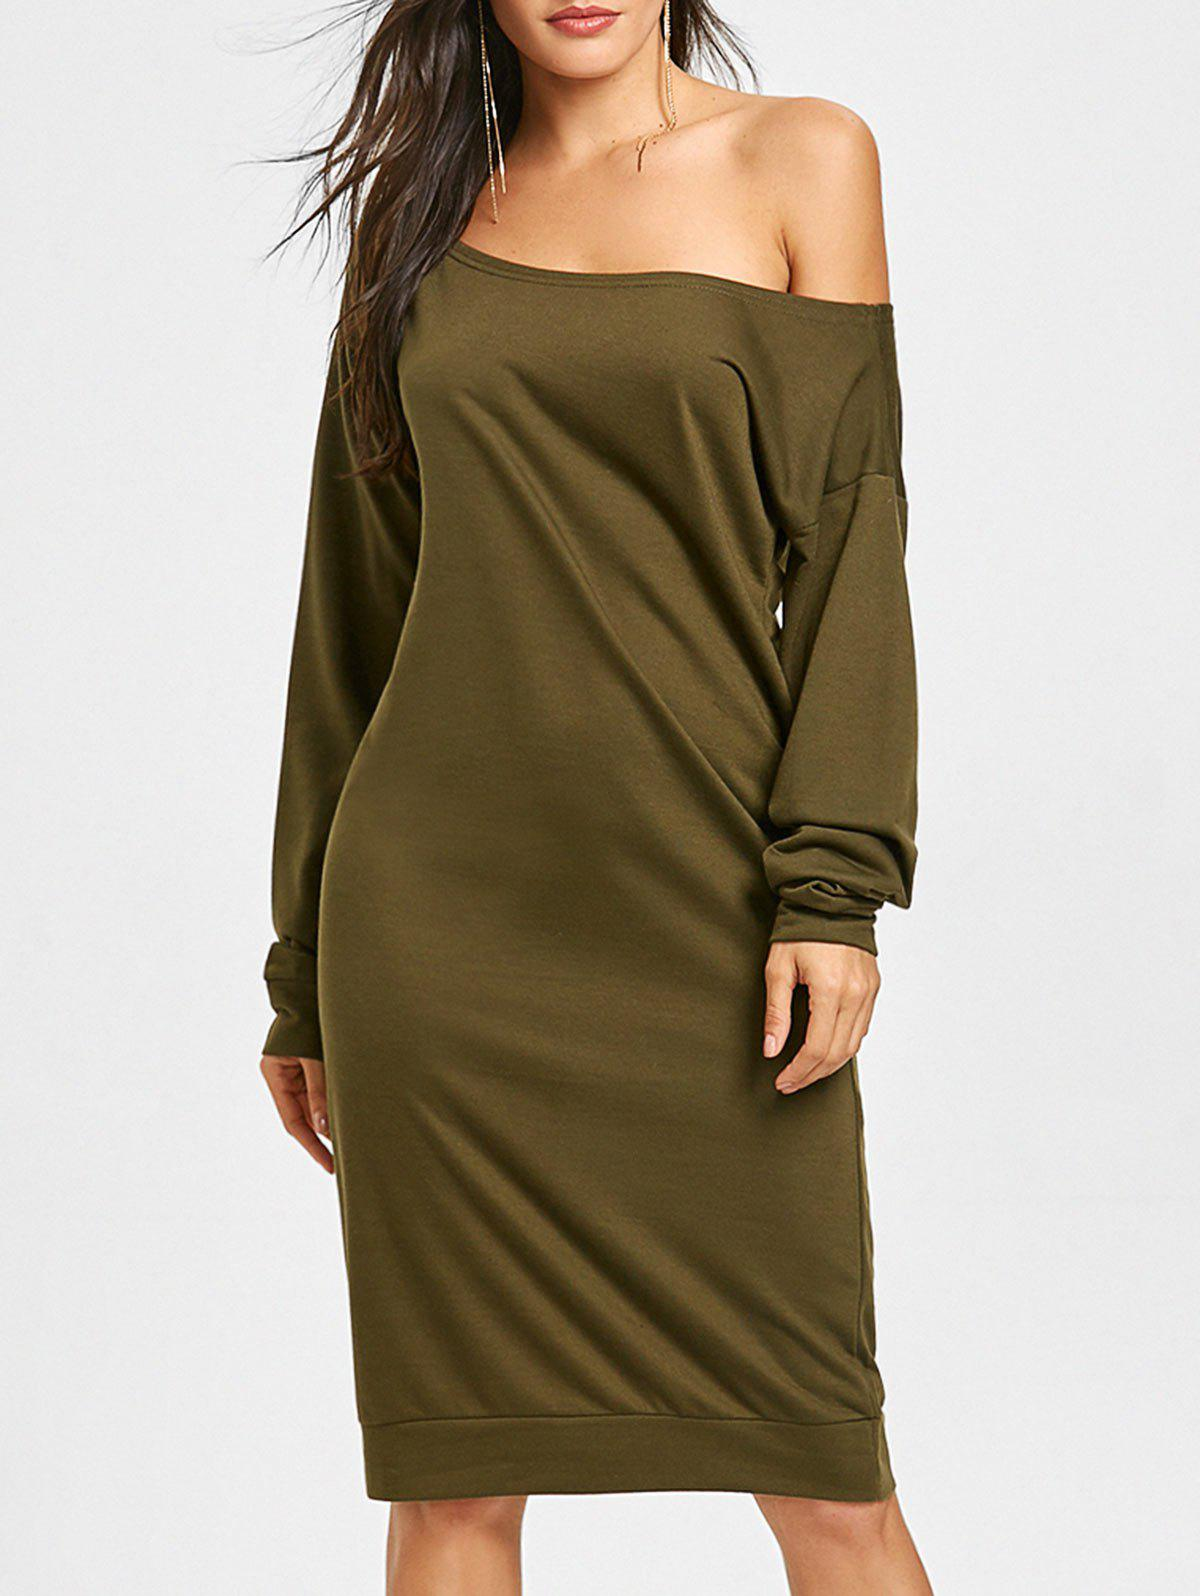 Hot Long Sleeve Skew Collar Sweatshirt Dress